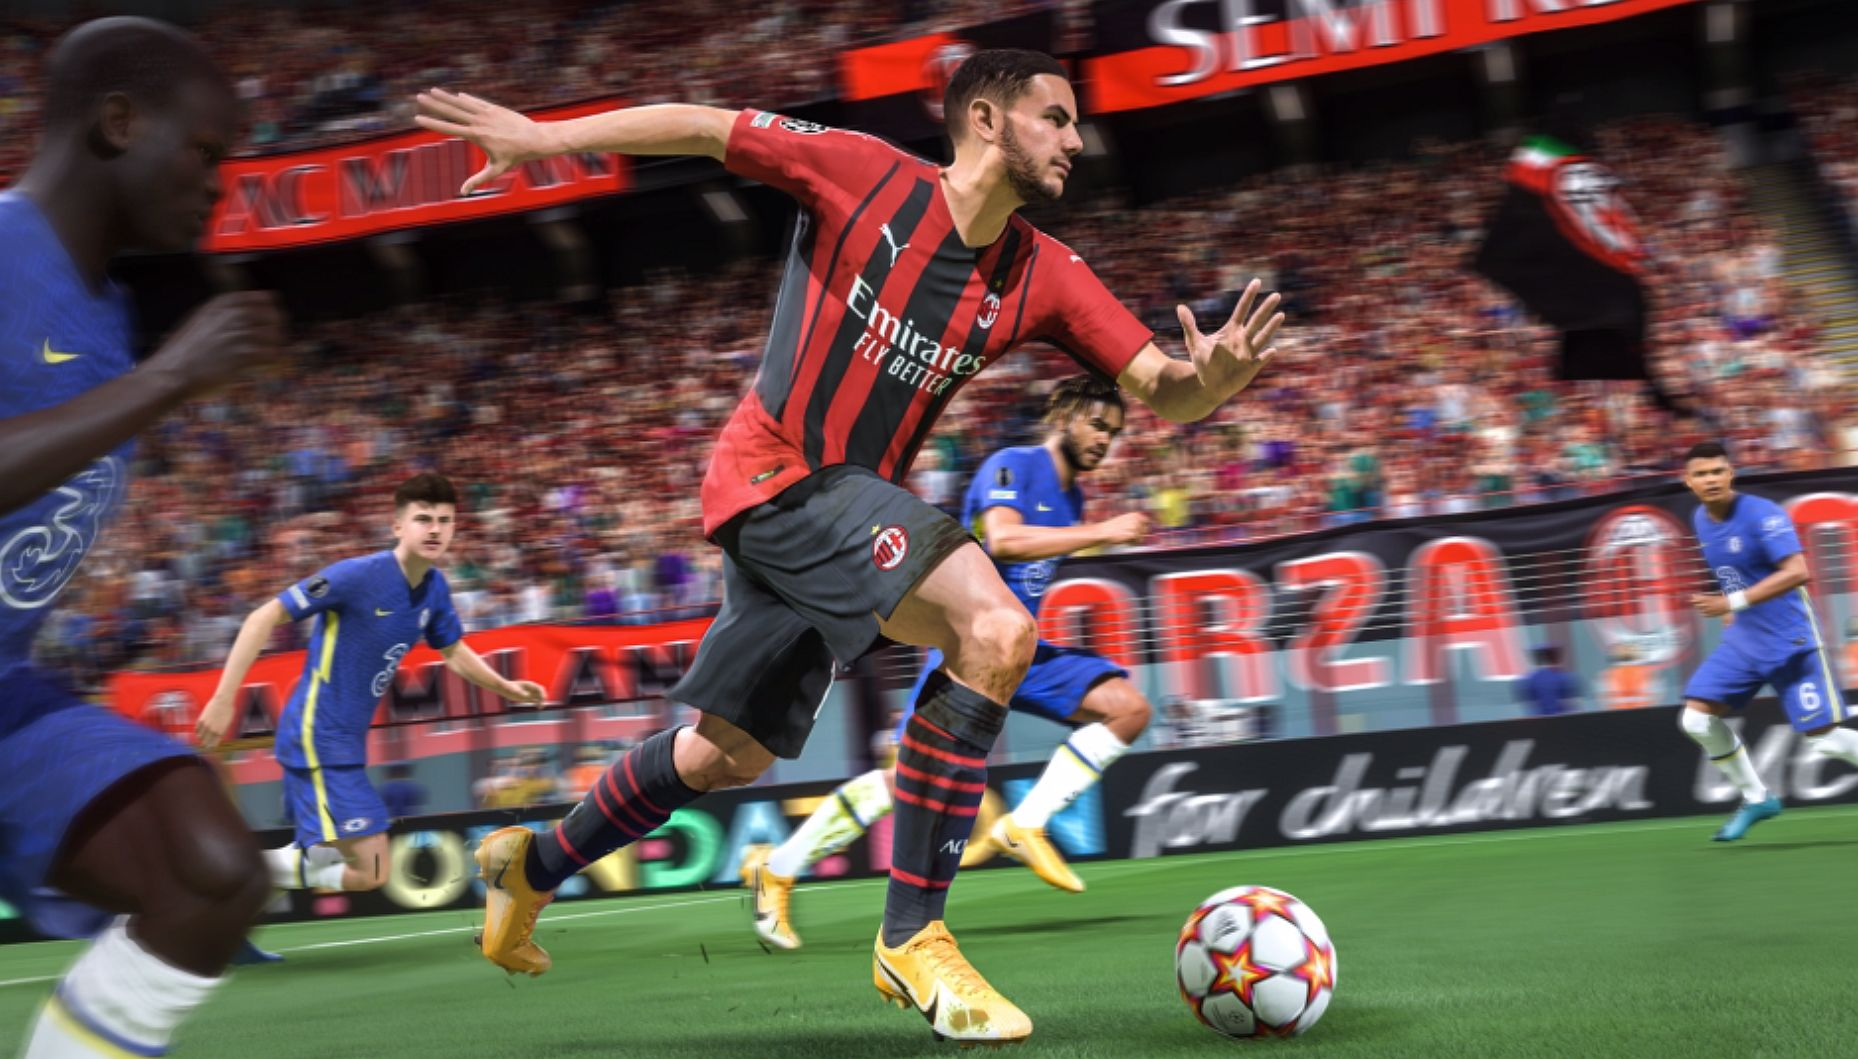 FIFA 22 team discuss development and HyperMotion tech in latest EA